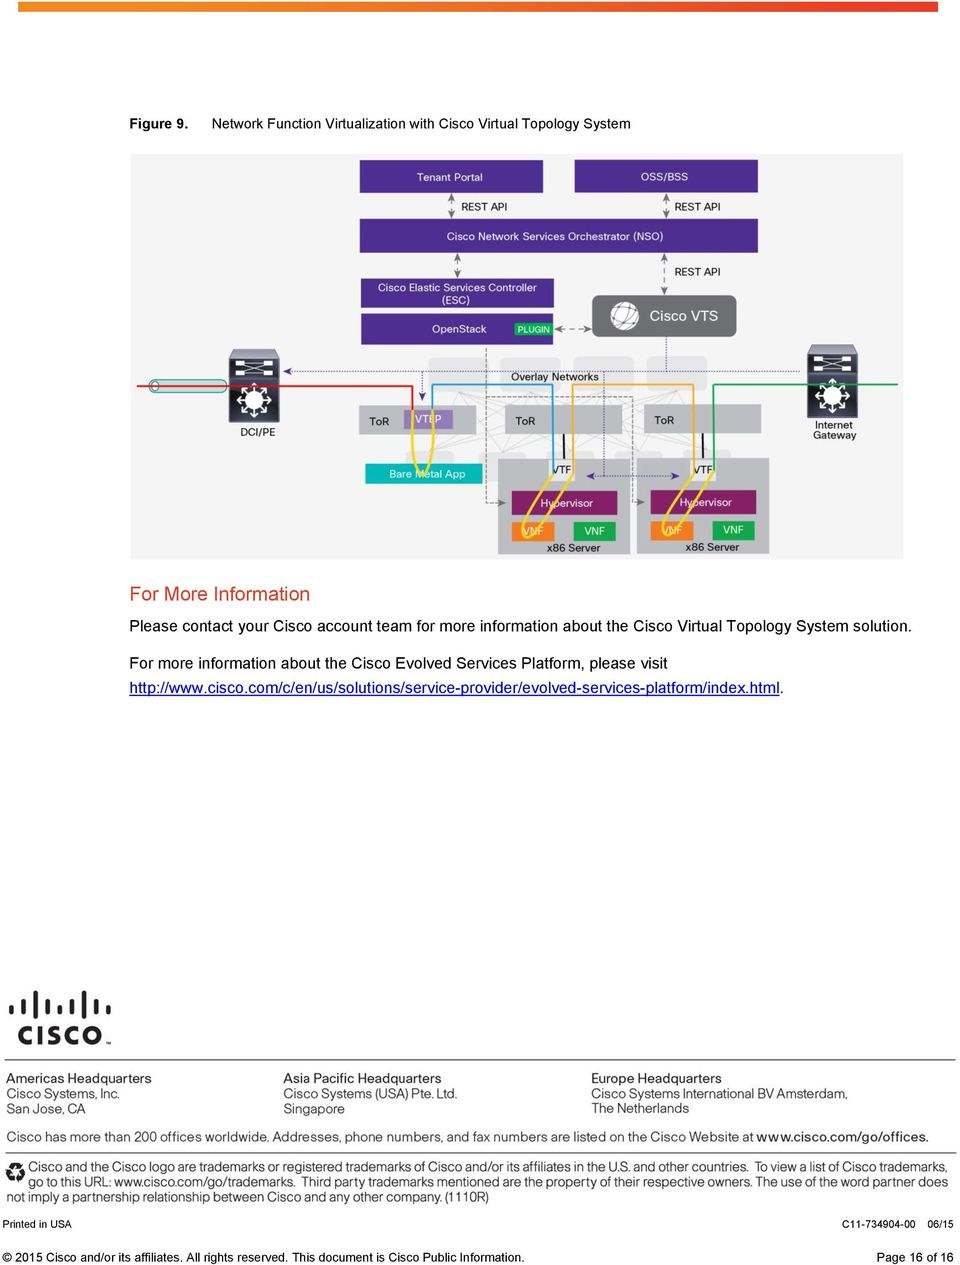 more information about the Cisco Virtual Topology System solution.